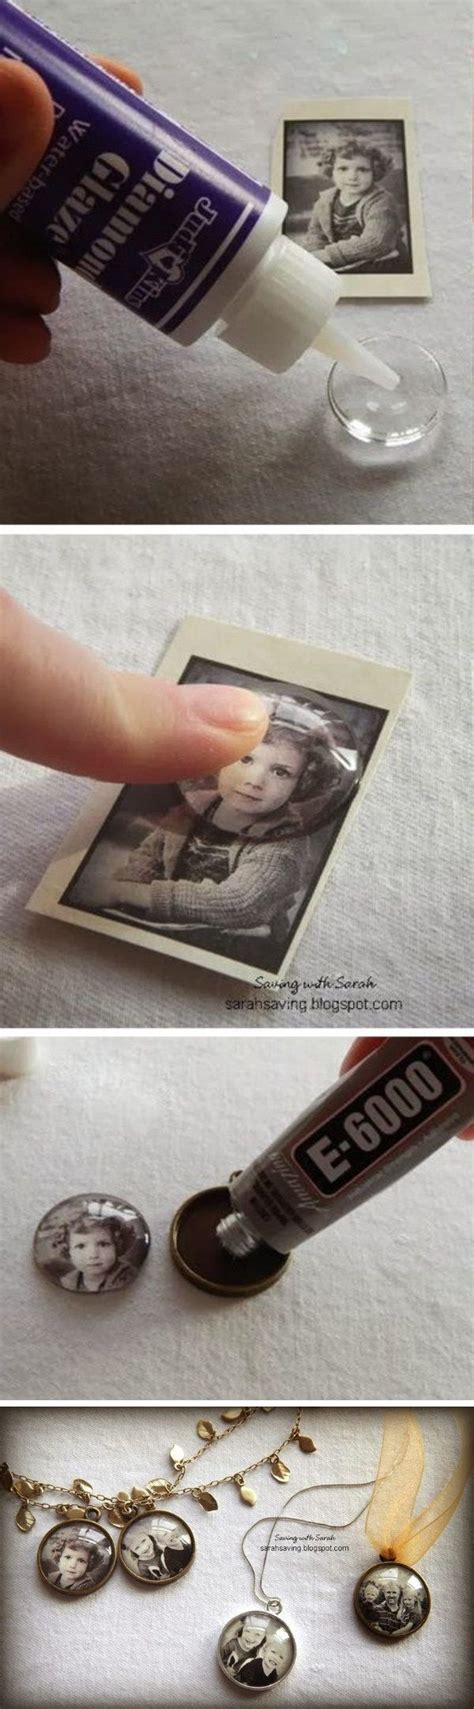 household diy projects for less than 50 diy photo pendants these photo pendants are actually